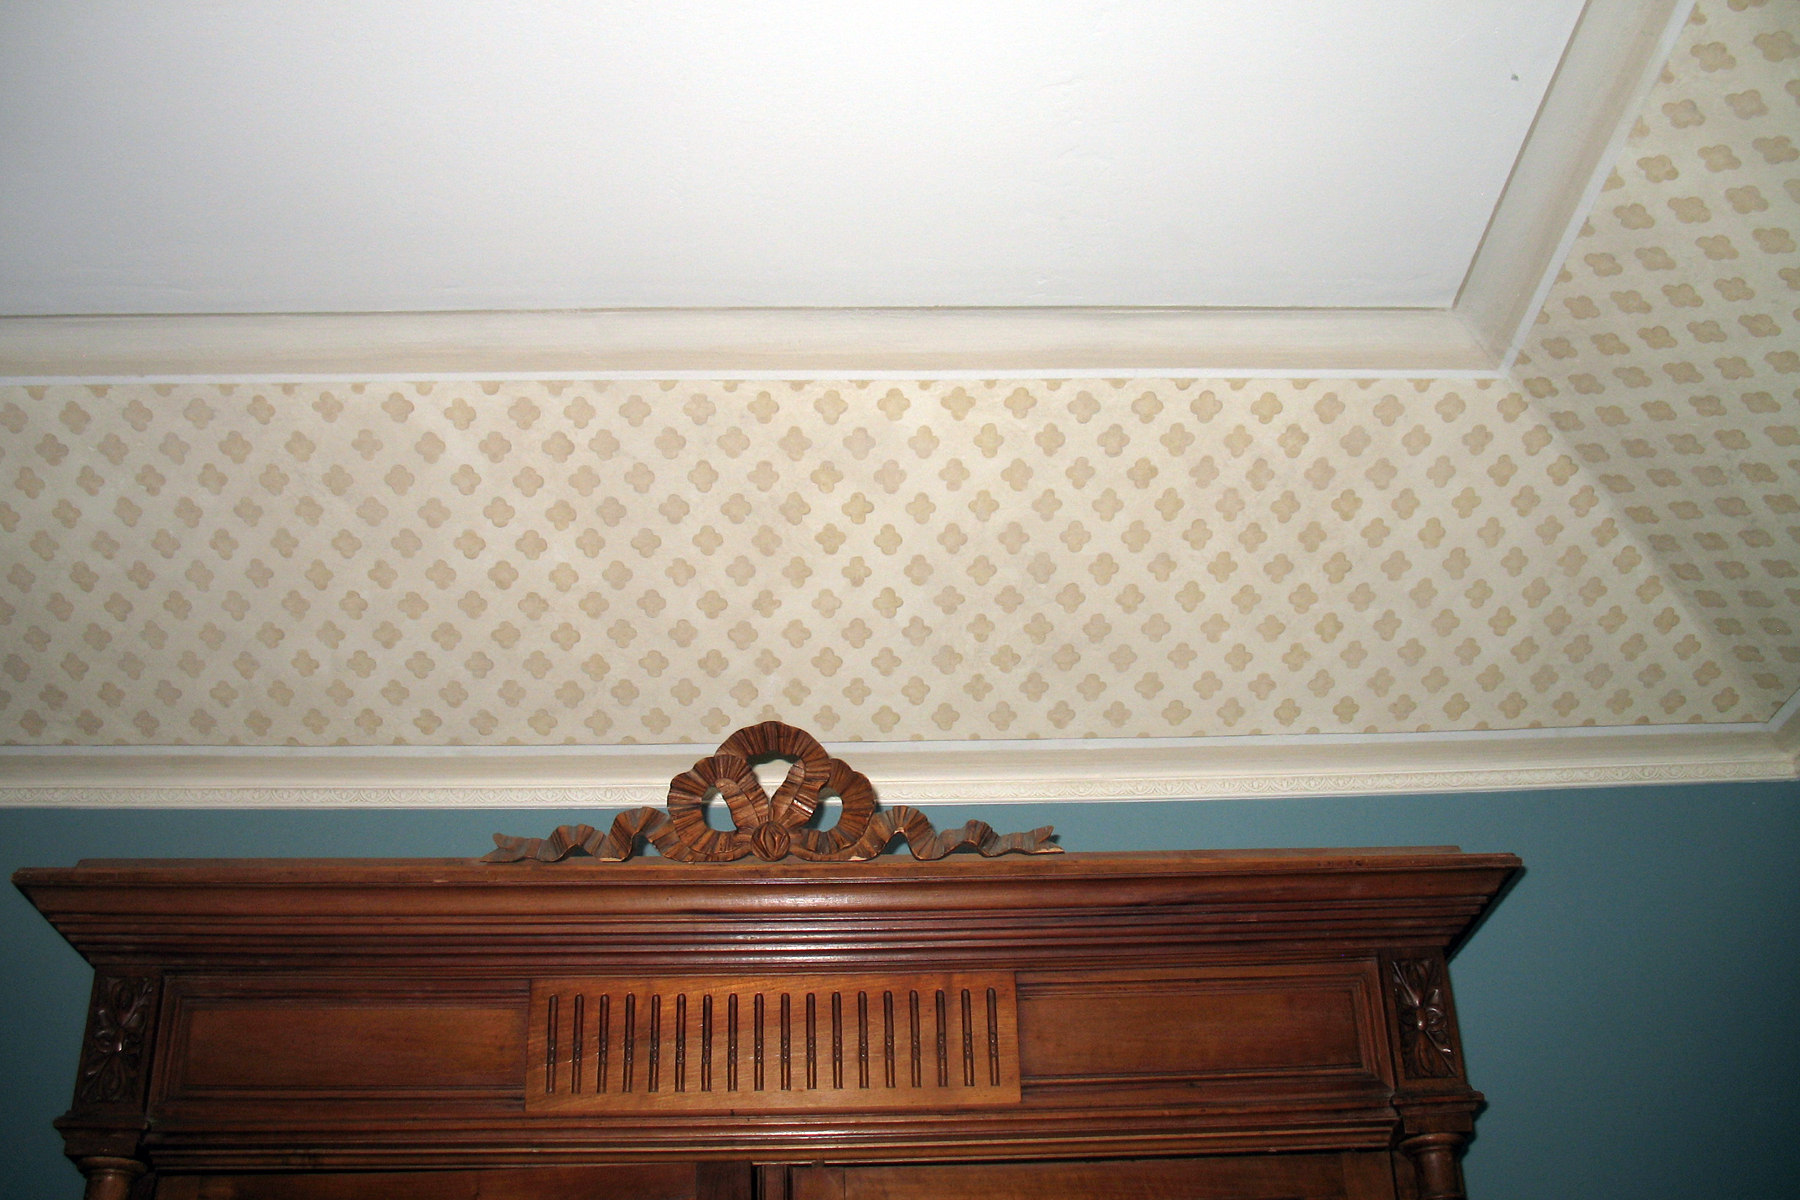 HAND PAINTED DESIGN ON ANGLED CEILING